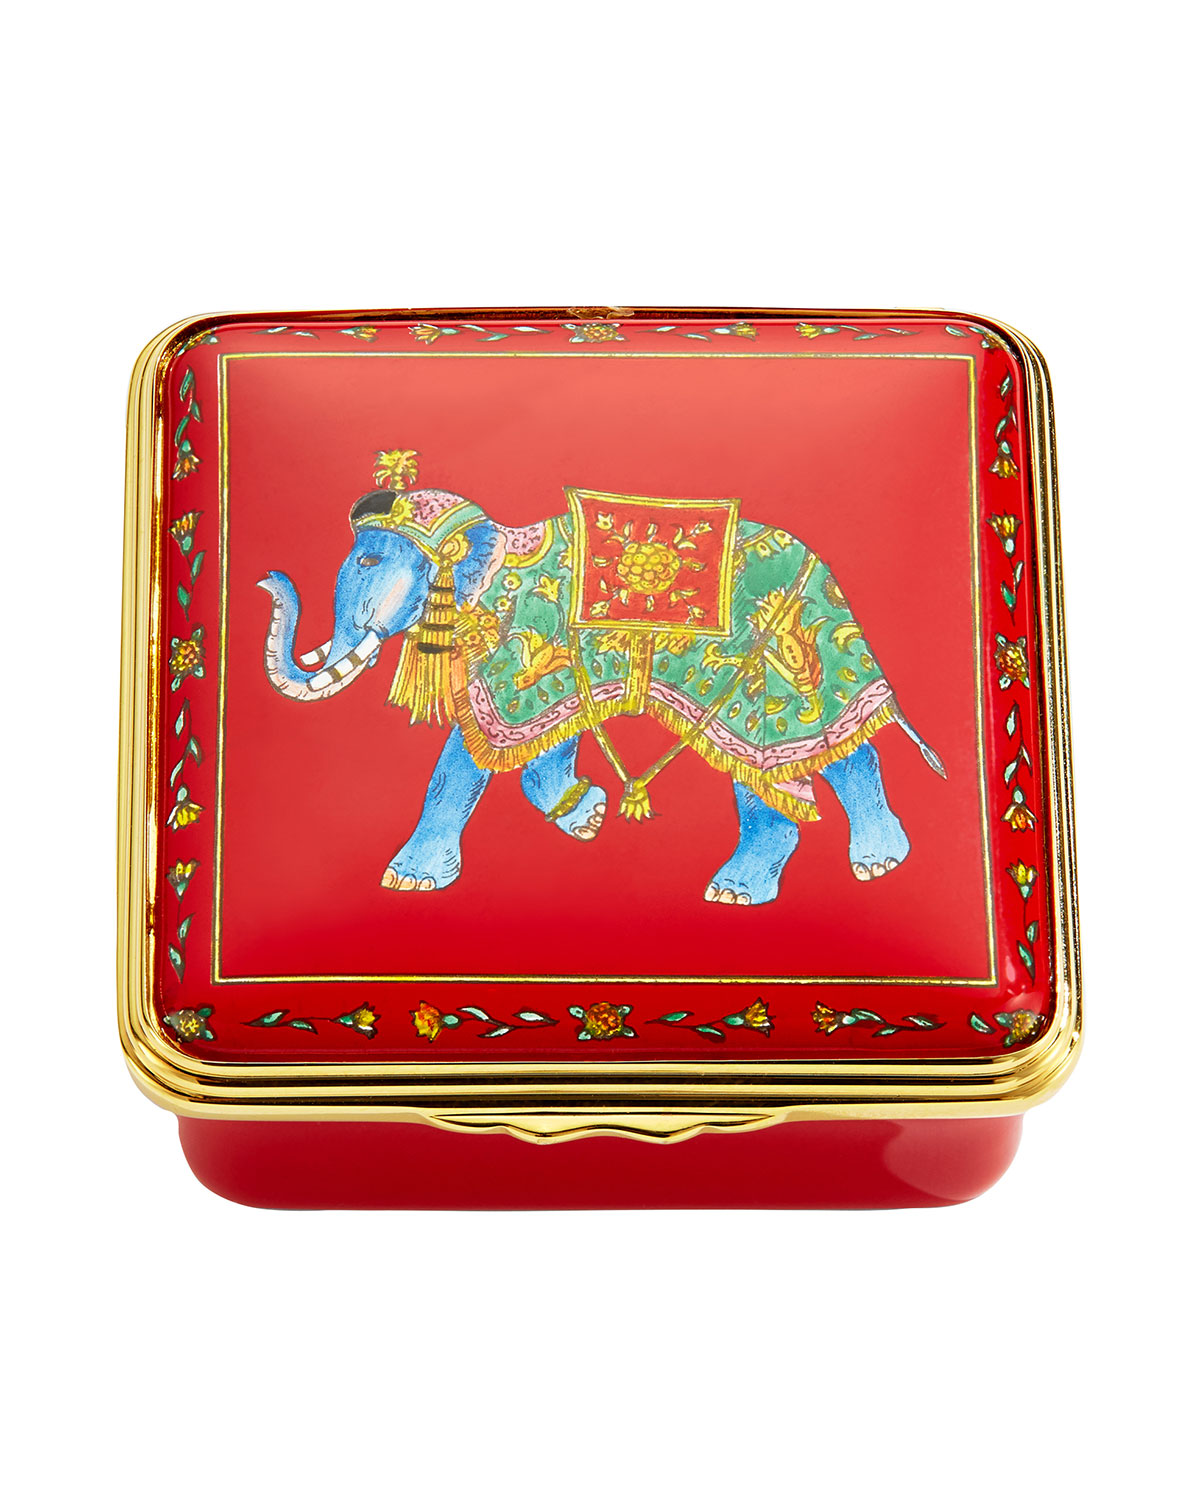 Halcyon Days Ceremonial Indian Elephant Enamel Box